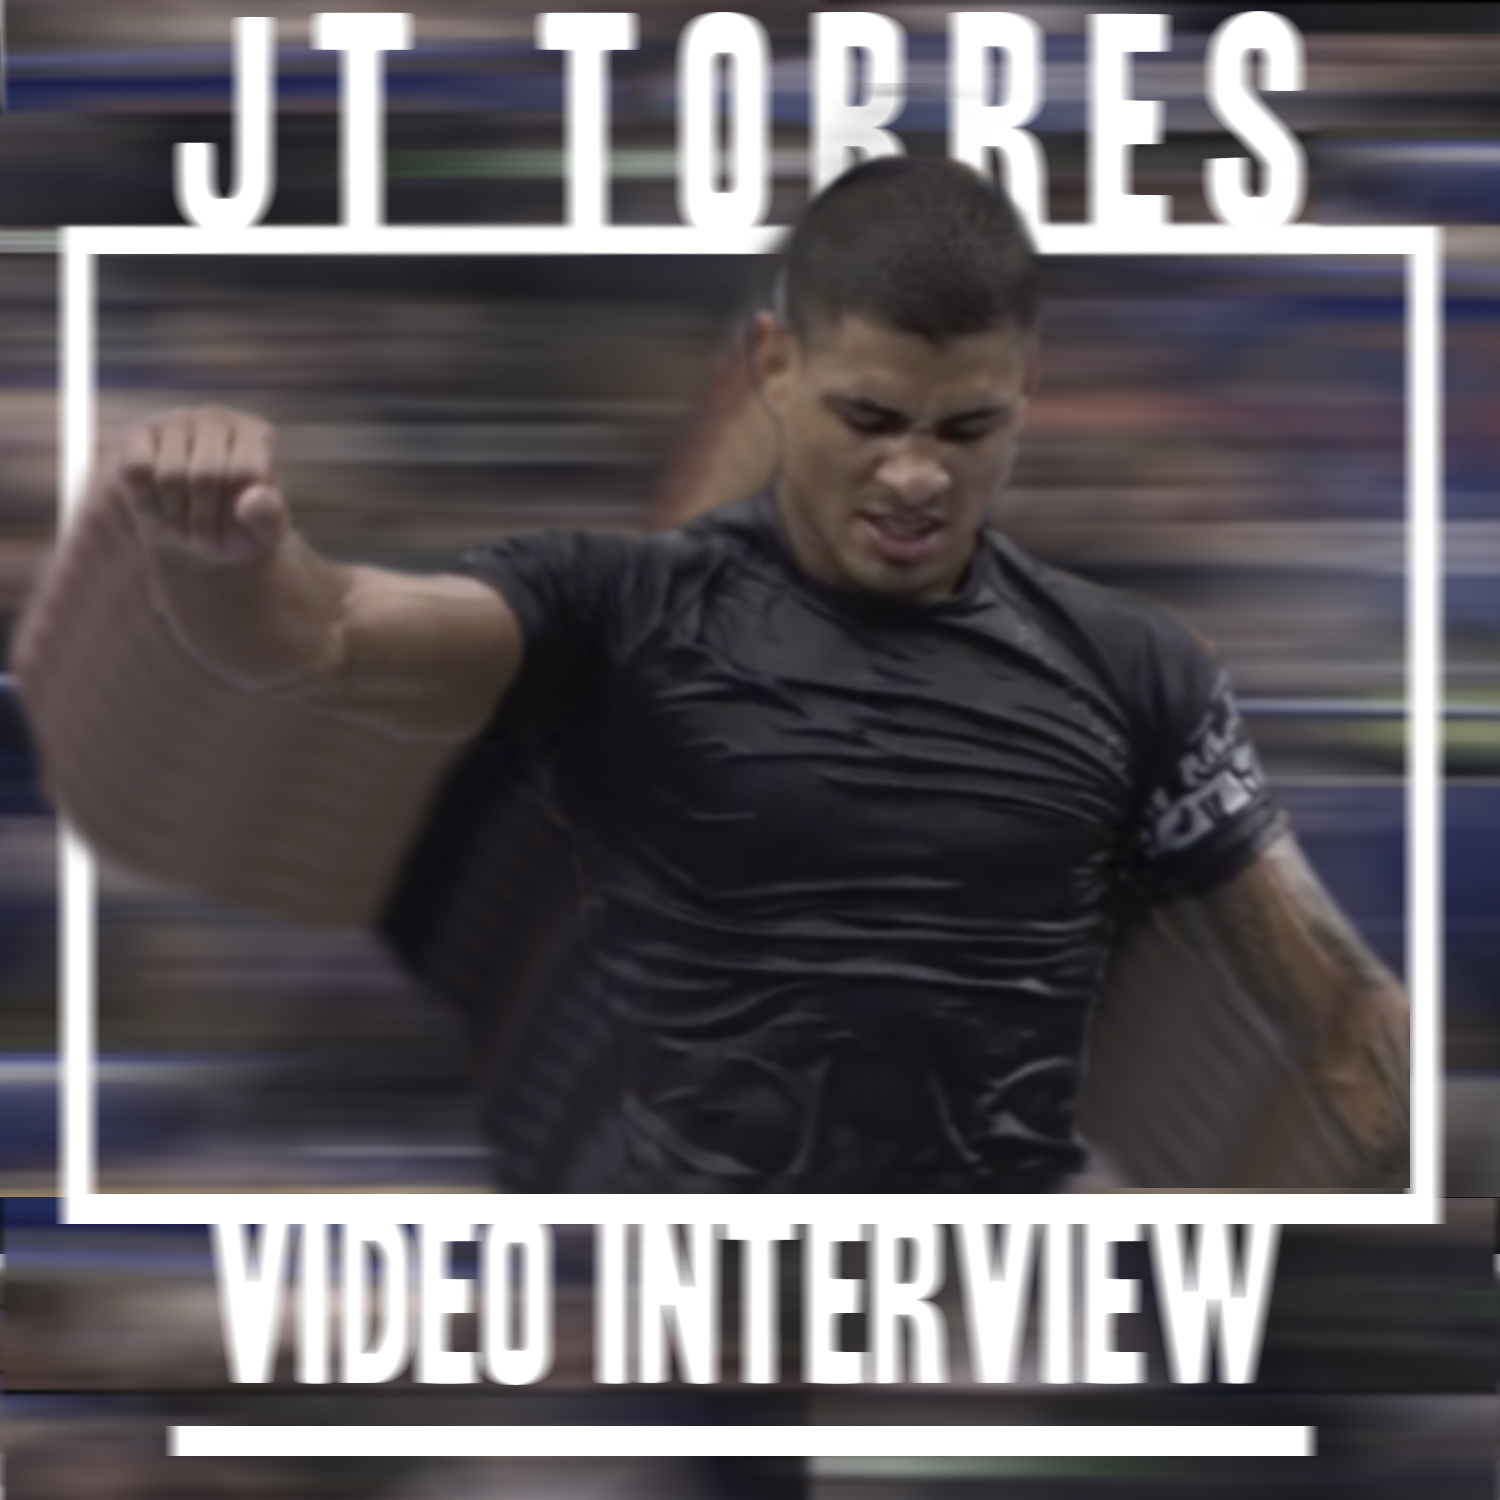 Available December 10, 2017. - We spend the day with 2017 77kg ADCC Champion JT Torres as he travels to Vienna, Virginia to conduct a seminar at the Rock Brazilian Jiu Jitsu academy. In this short vignette, we provide a glimpse into JT's instruction philosophy, and discuss the ethos that led to his greatest competitive success despite balancing a cross country move, establishing a new academy, and rebuilding his entire training camp.